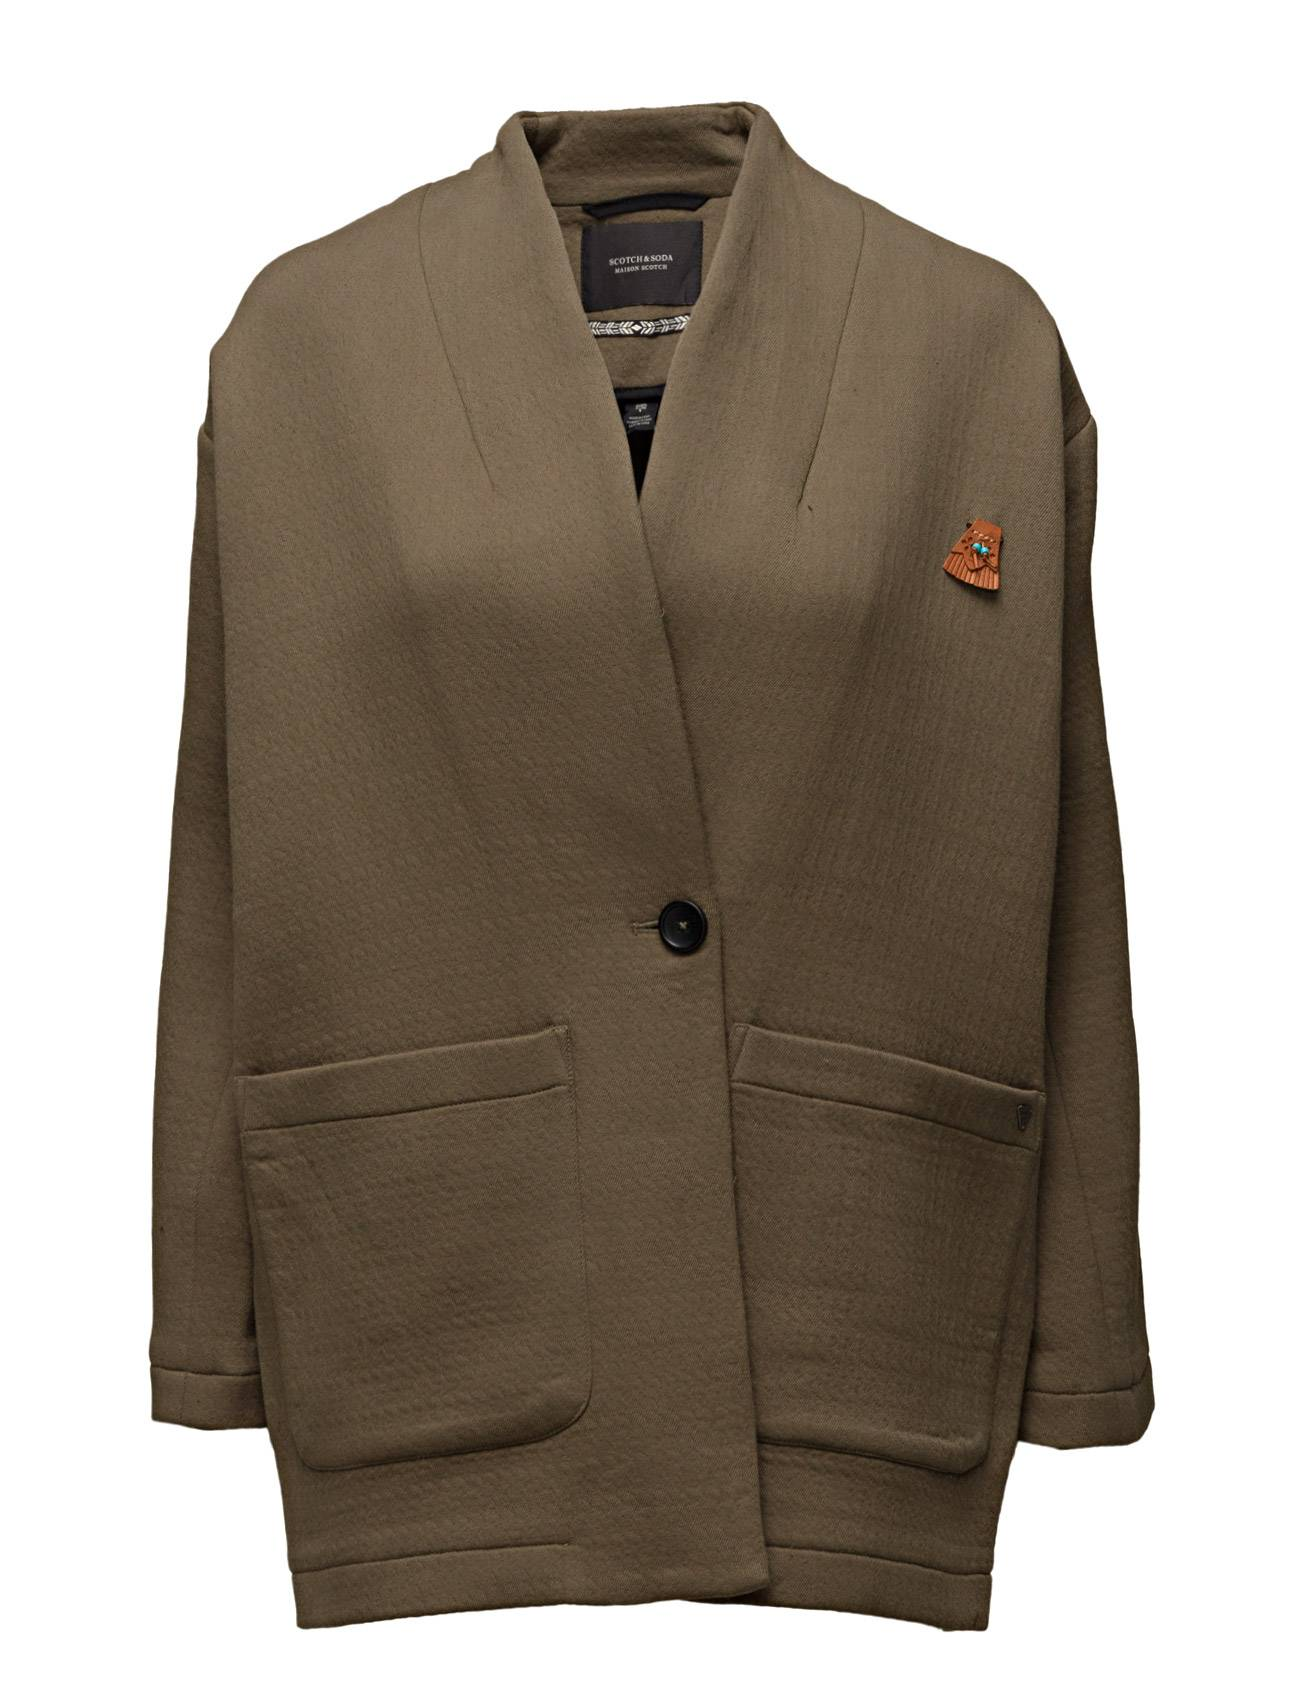 Scotch & Soda Relaxed Fit Blazer Jacket In New Texture